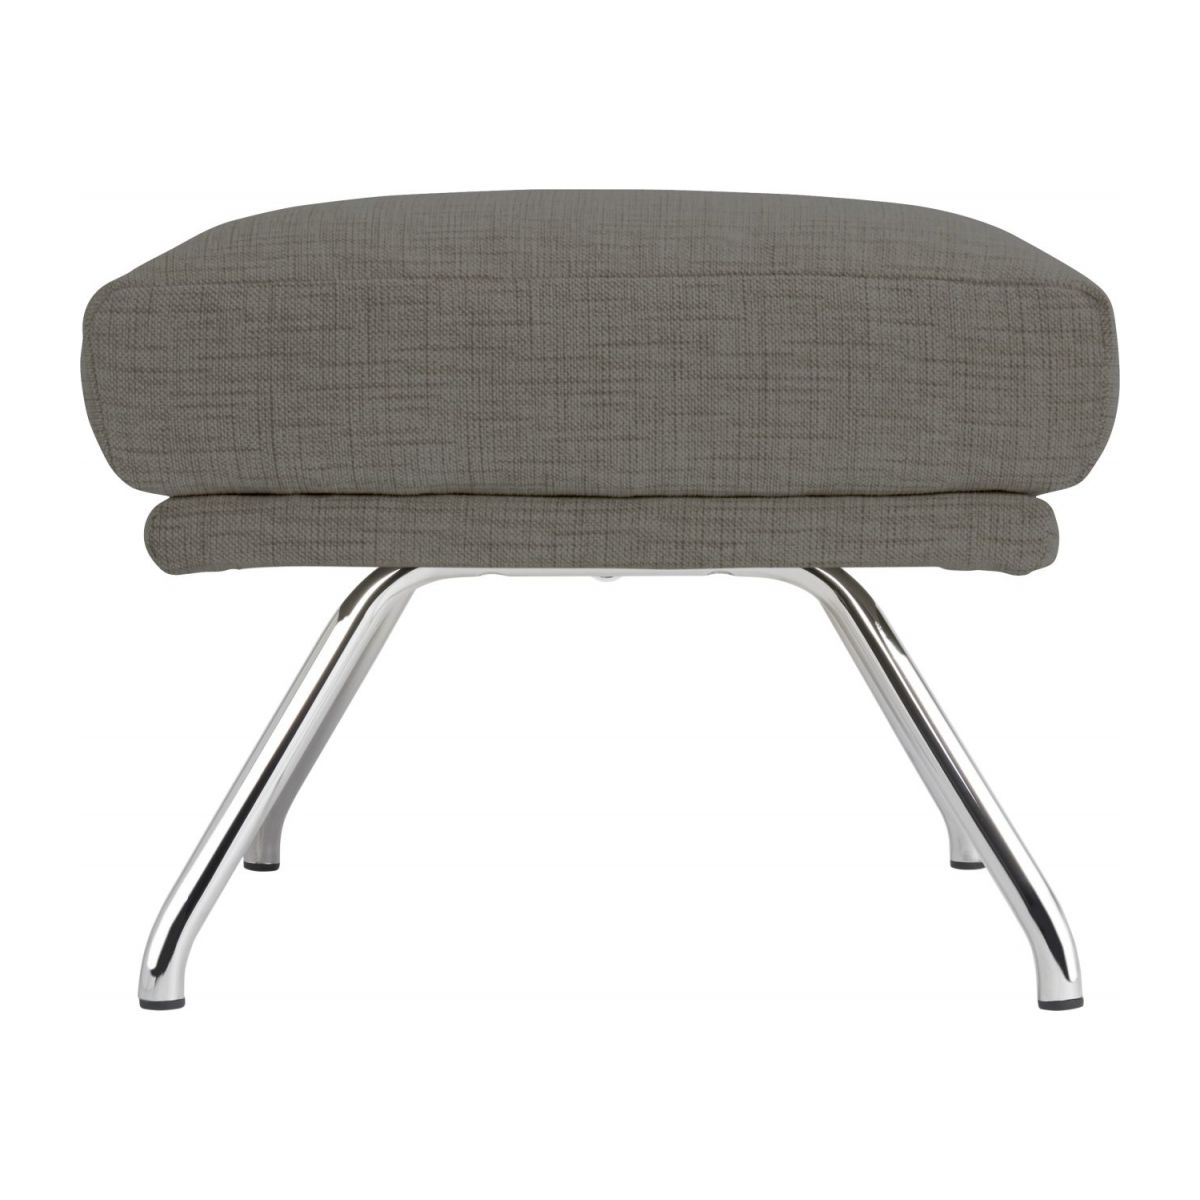 Footstool in Ancio fabric, river rock with chromed metal legs n°4